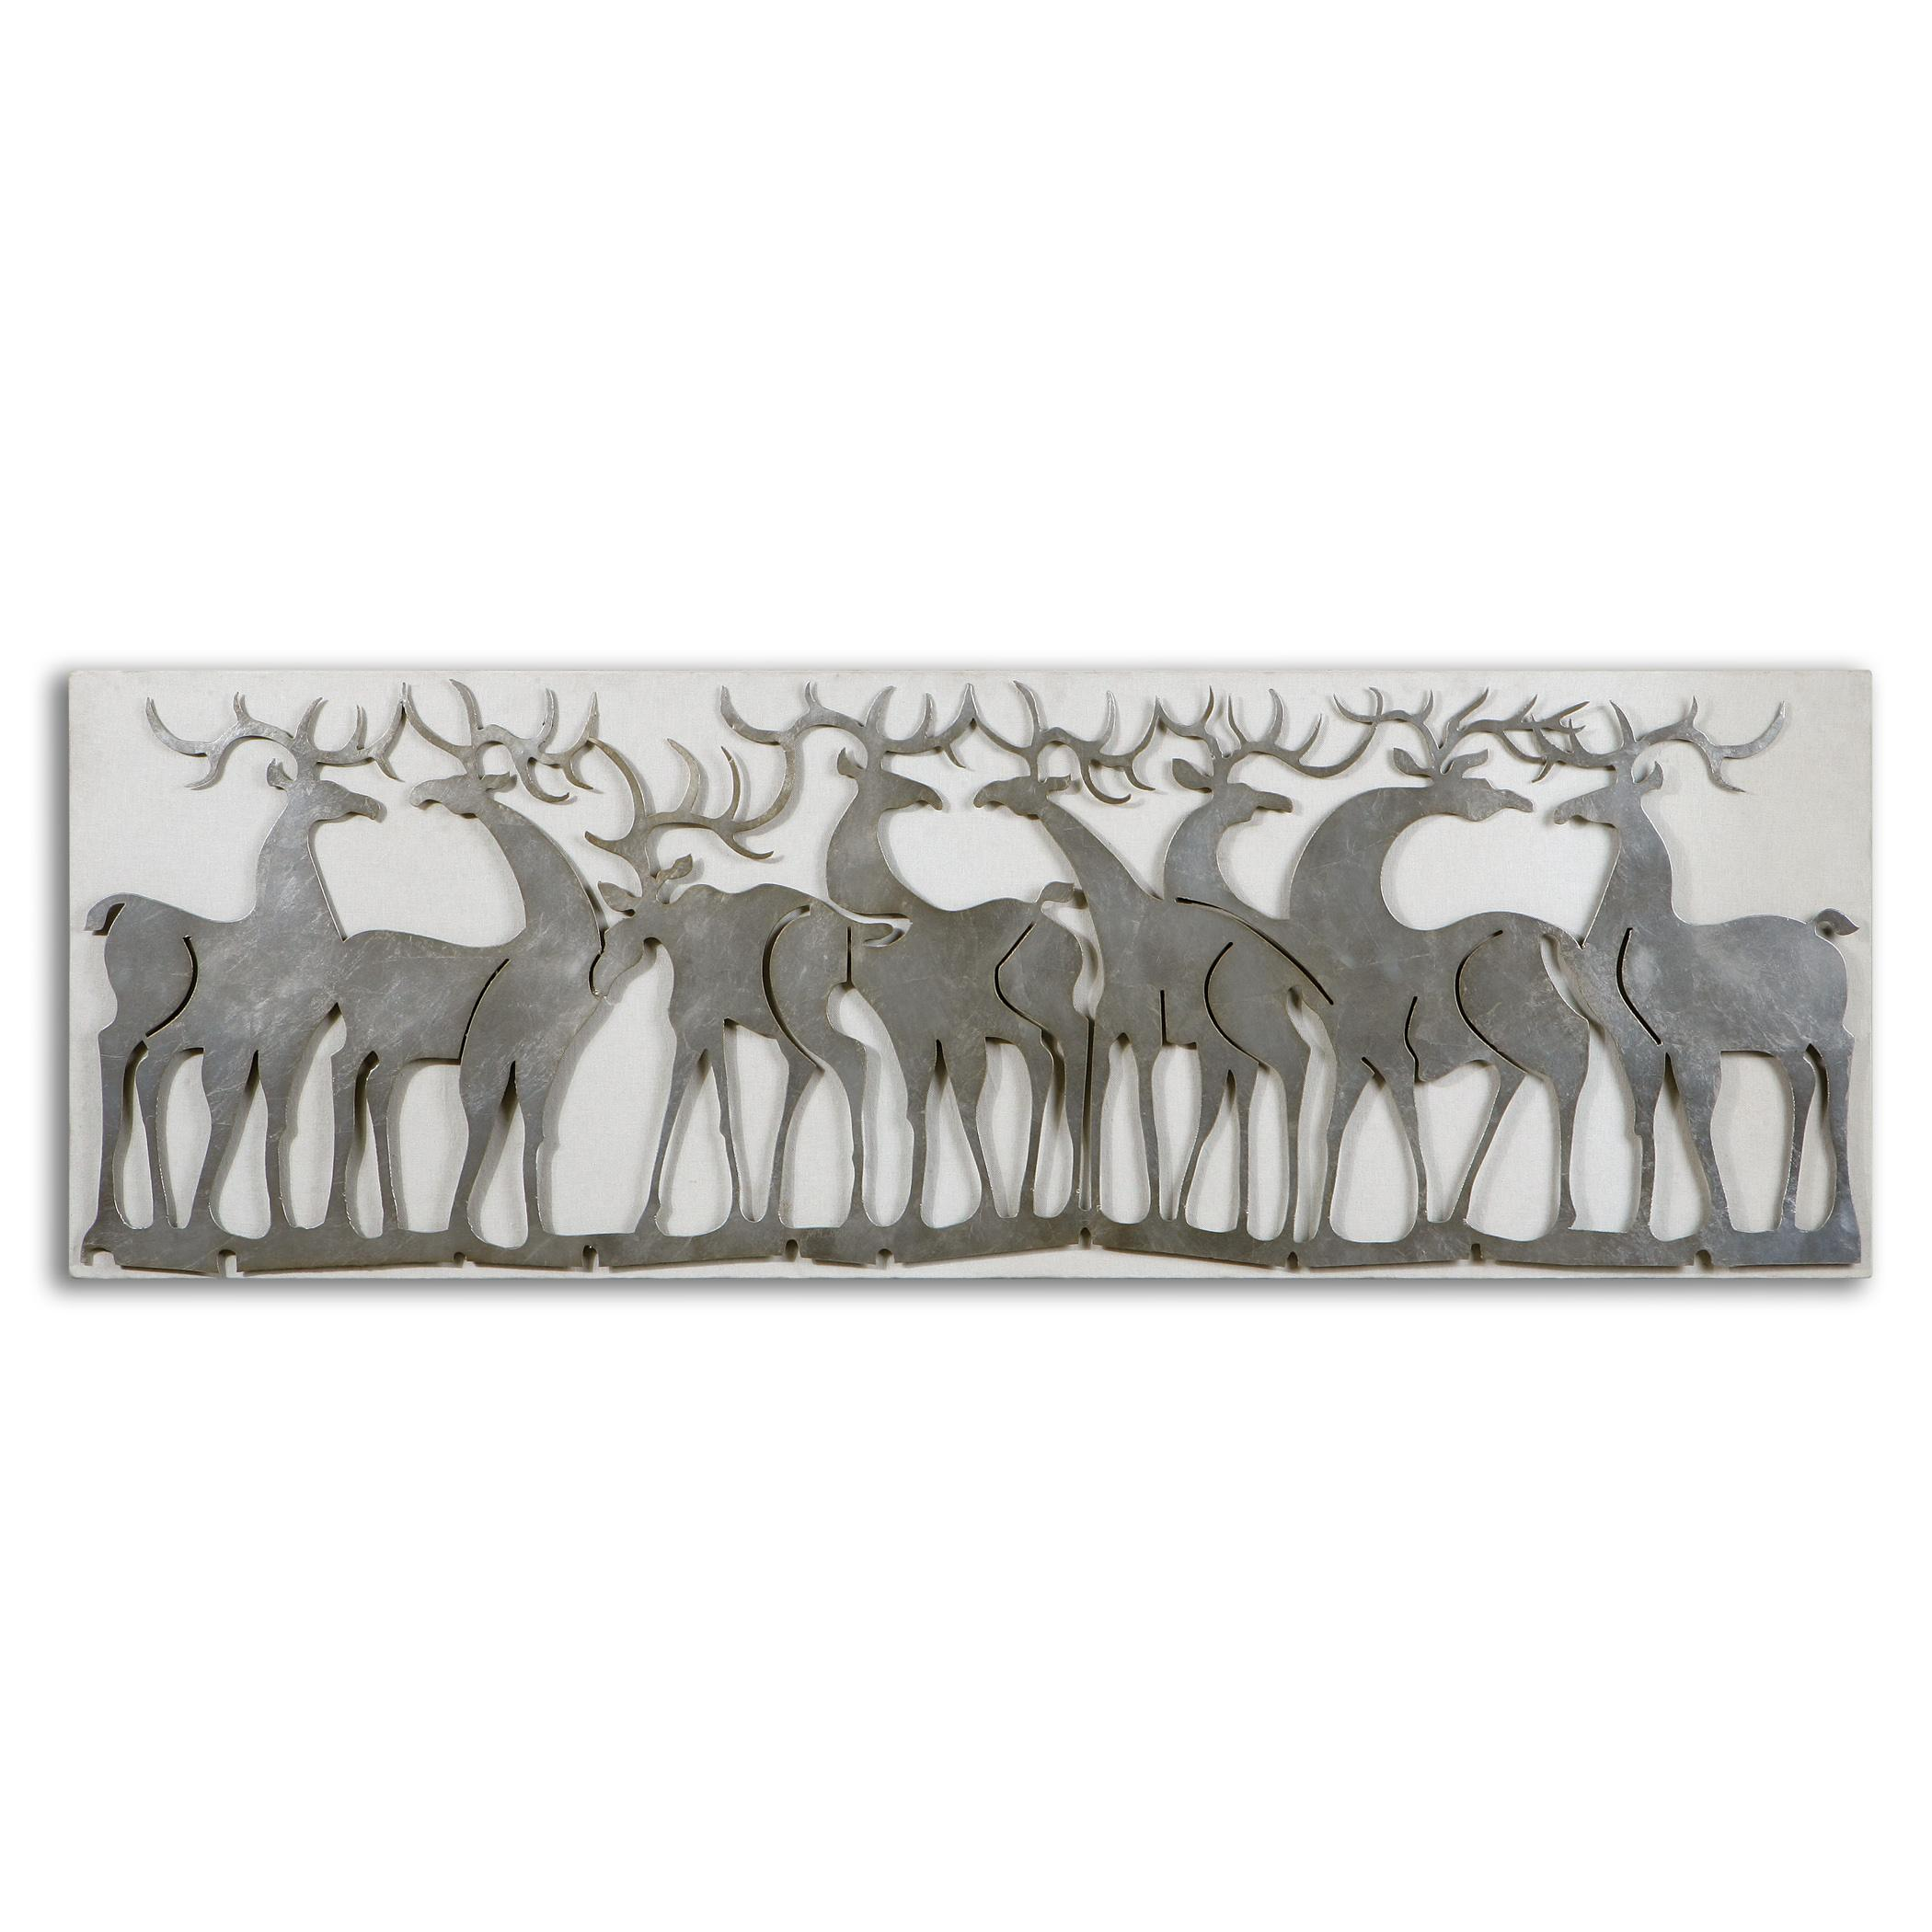 Uttermost Alternative Wall Decor Herd Of Deer Wall Art - Item Number: 07682